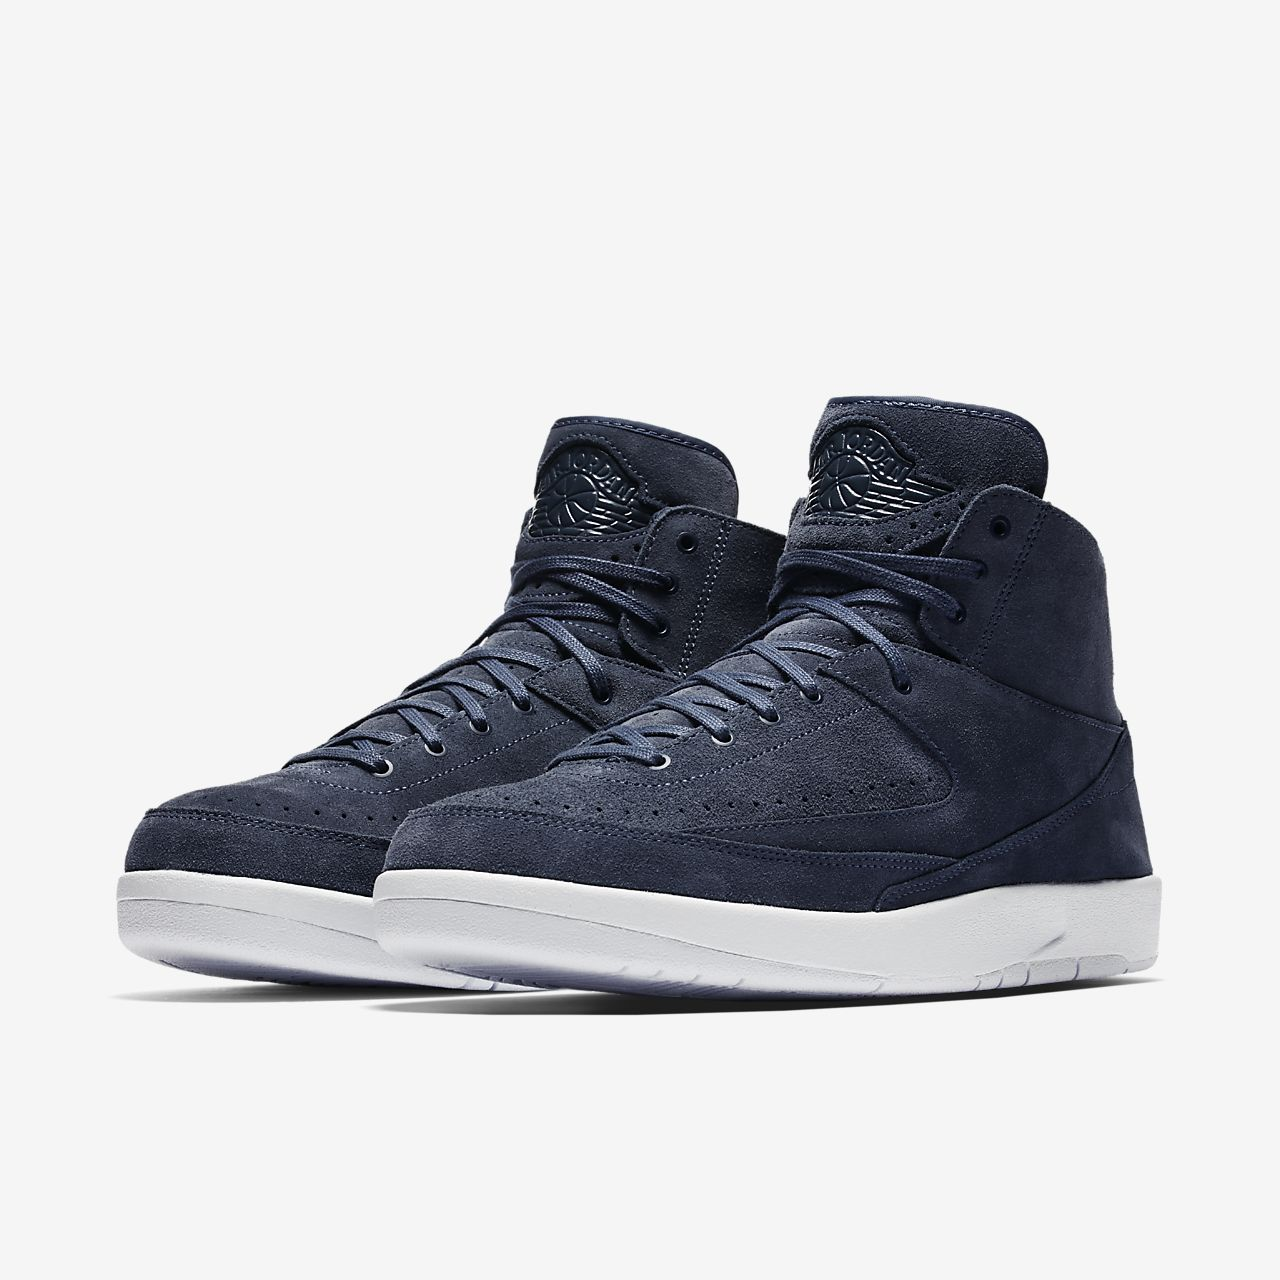 free shipping fddd1 cc20b ... Air Jordan 2 Retro Decon herresko